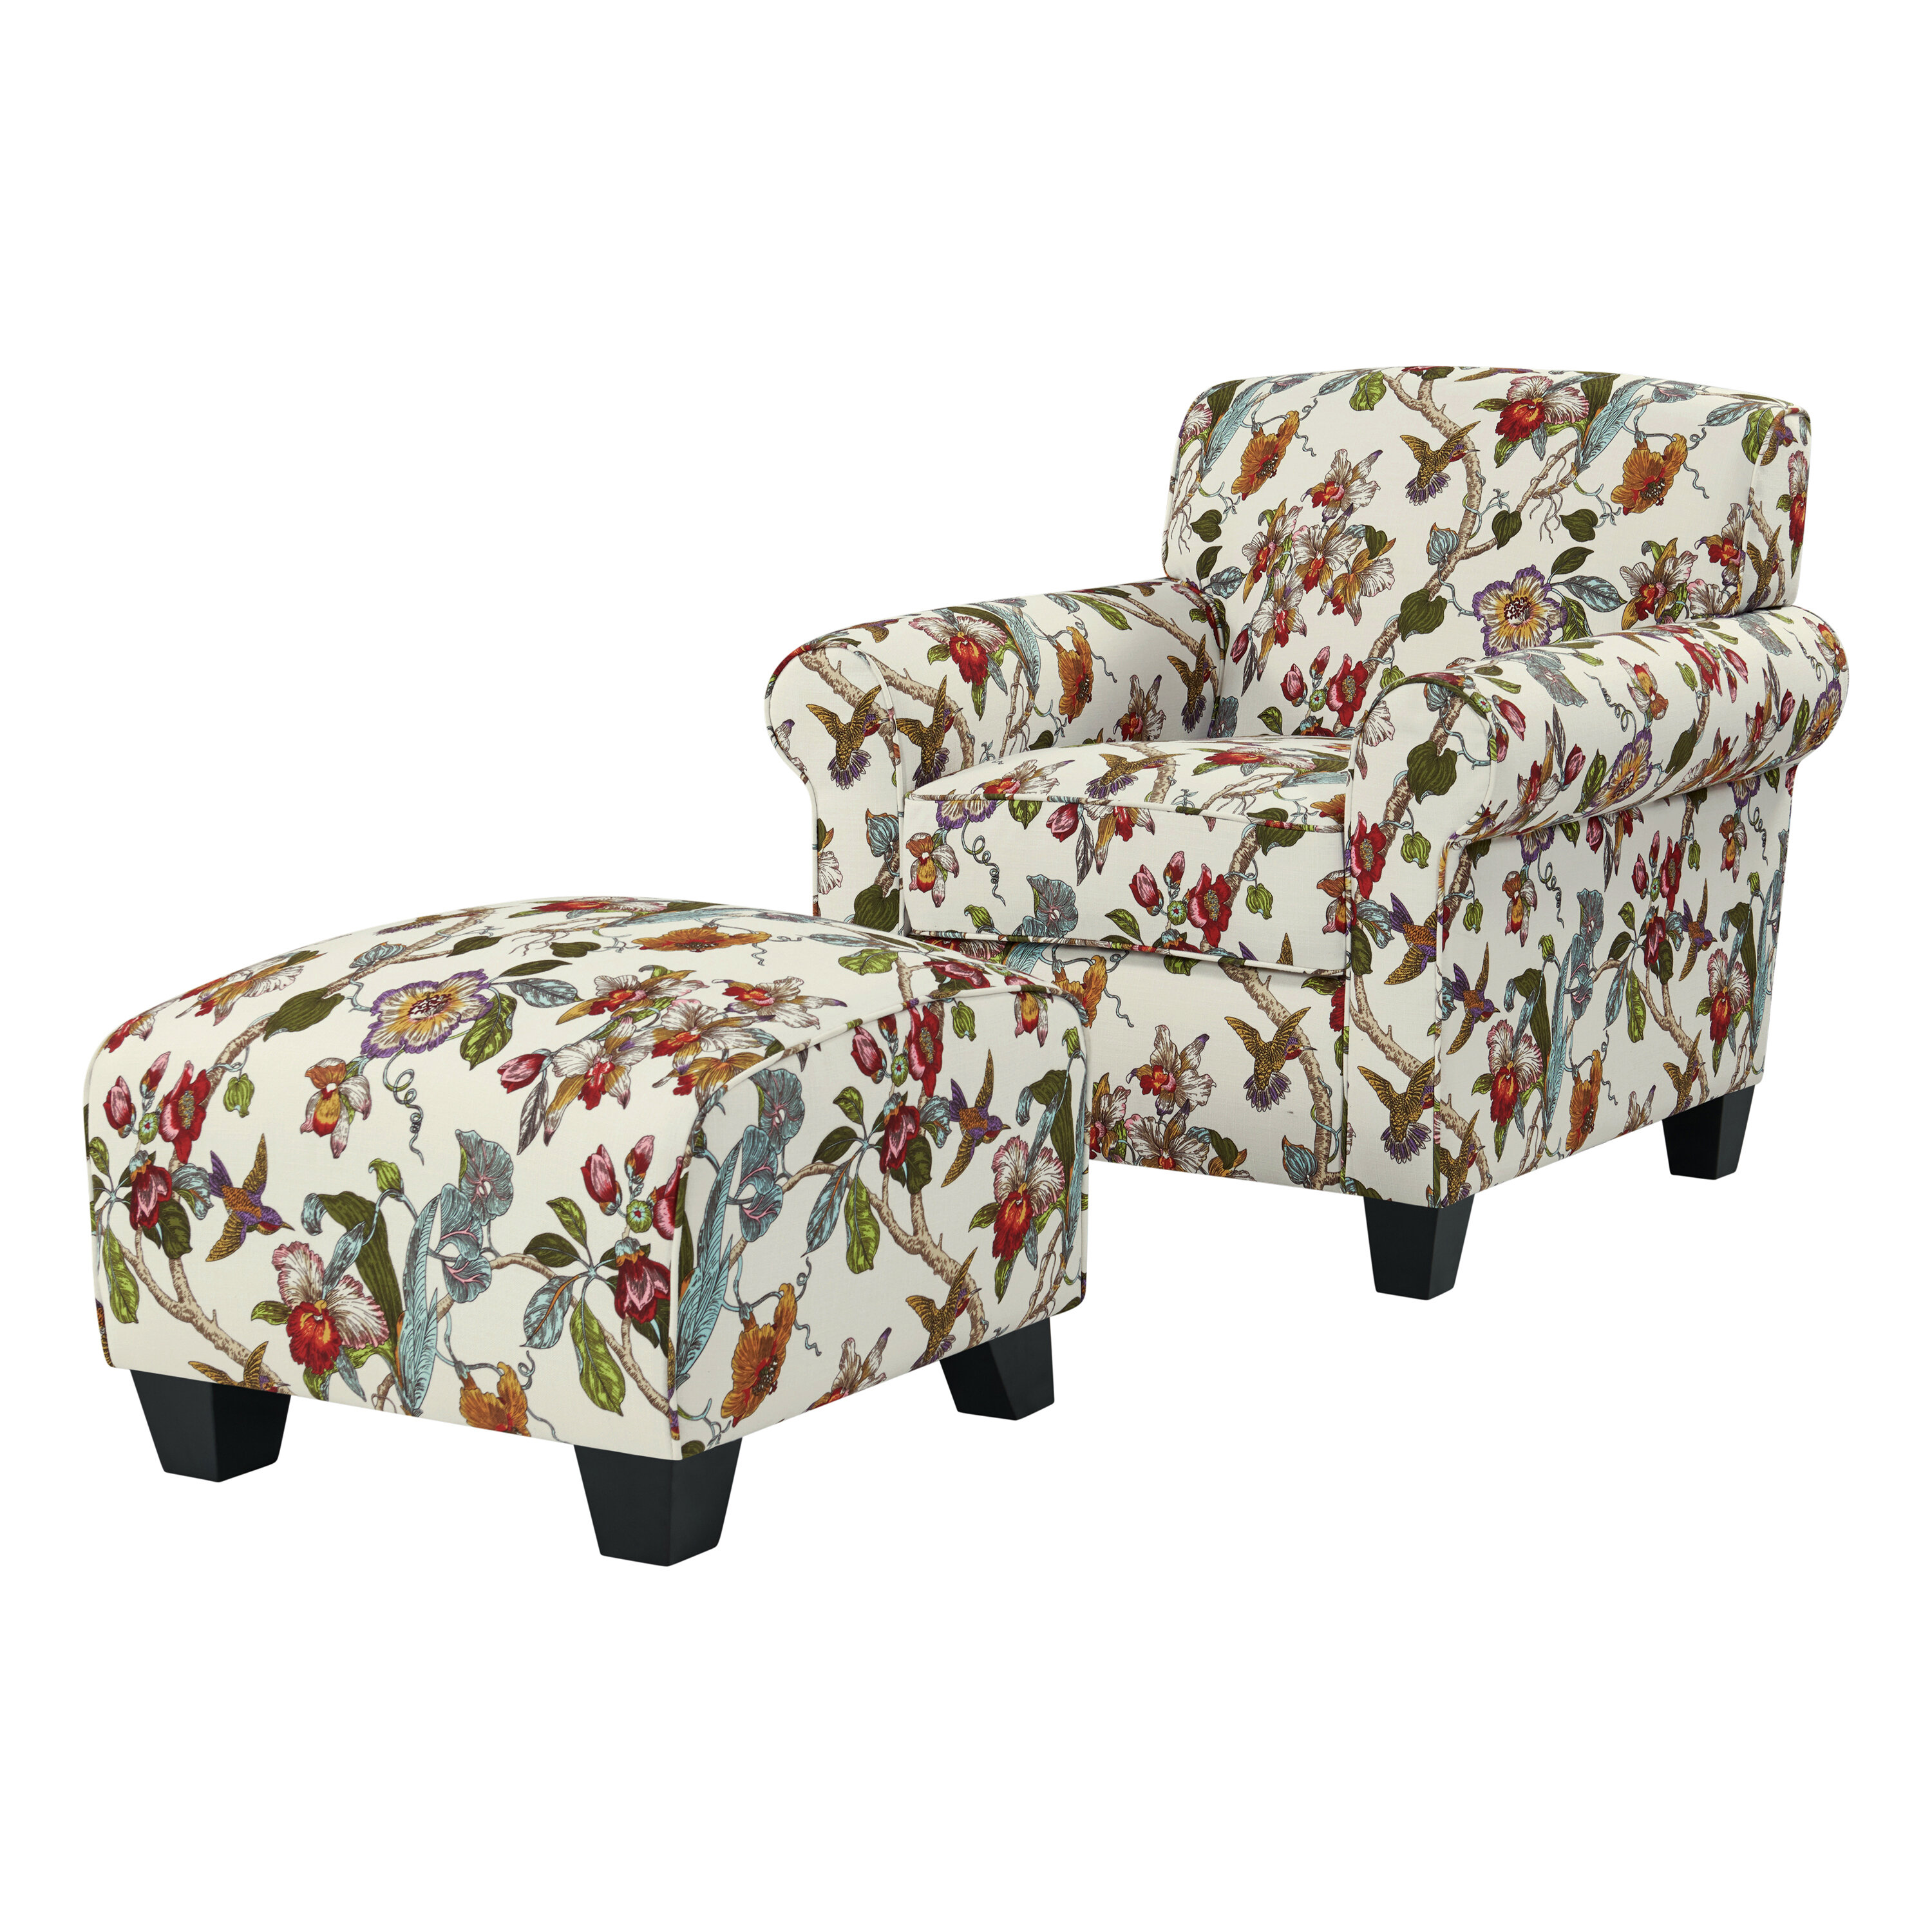 Alcott hill hummel armchair and ottoman reviews wayfair